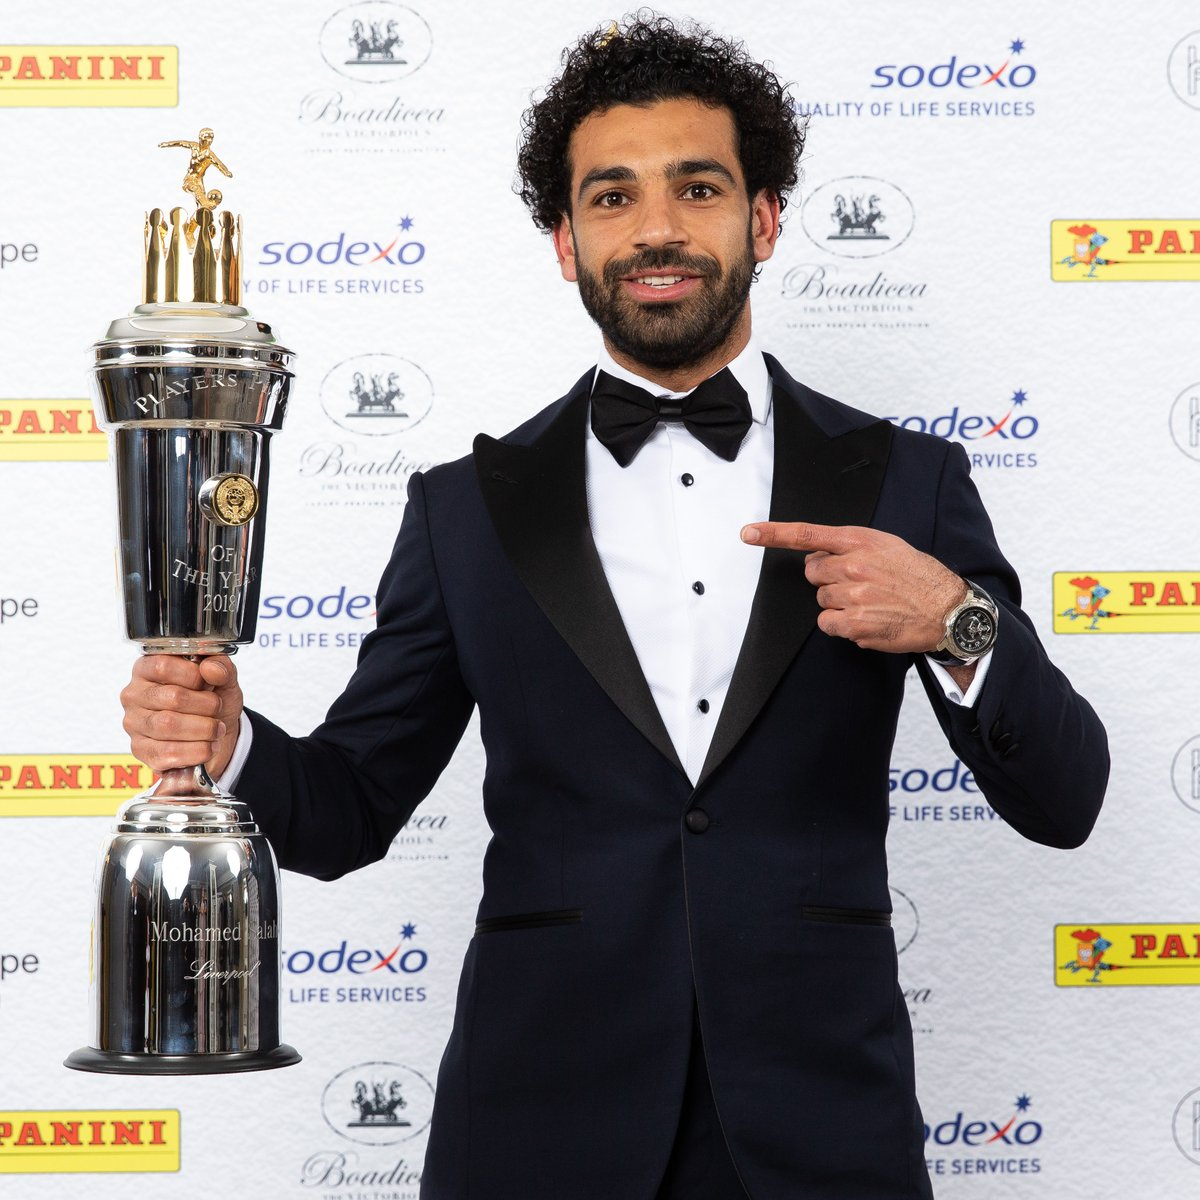 Mohamed Salah wins PFA Player of the year 2018